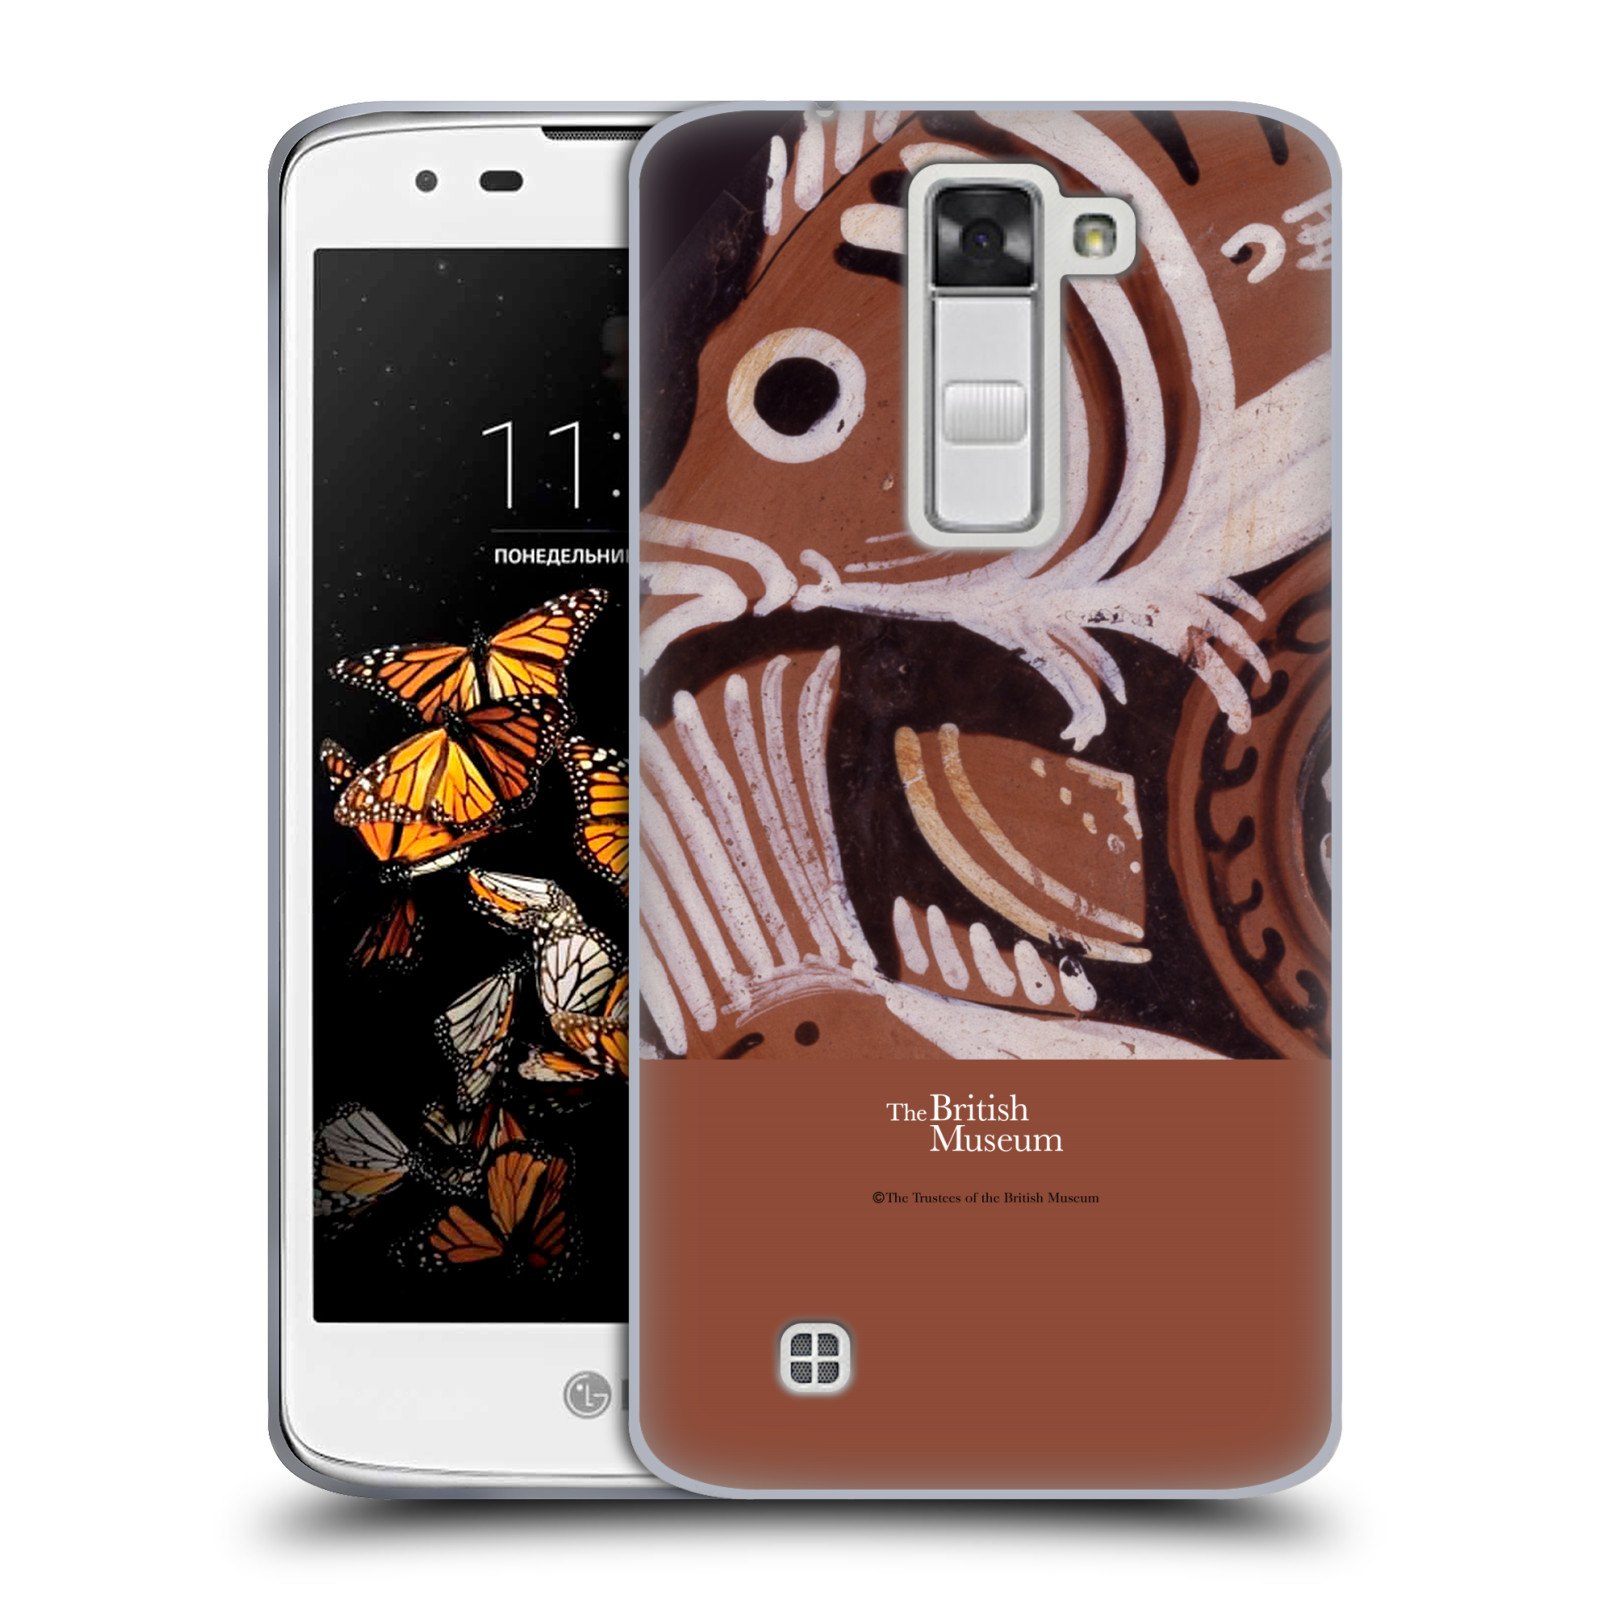 OFFICIAL-BRITISH-MUSEUM-IMAGES-AND-OBJECTS-SOFT-GEL-CASE-FOR-LG-PHONES-2